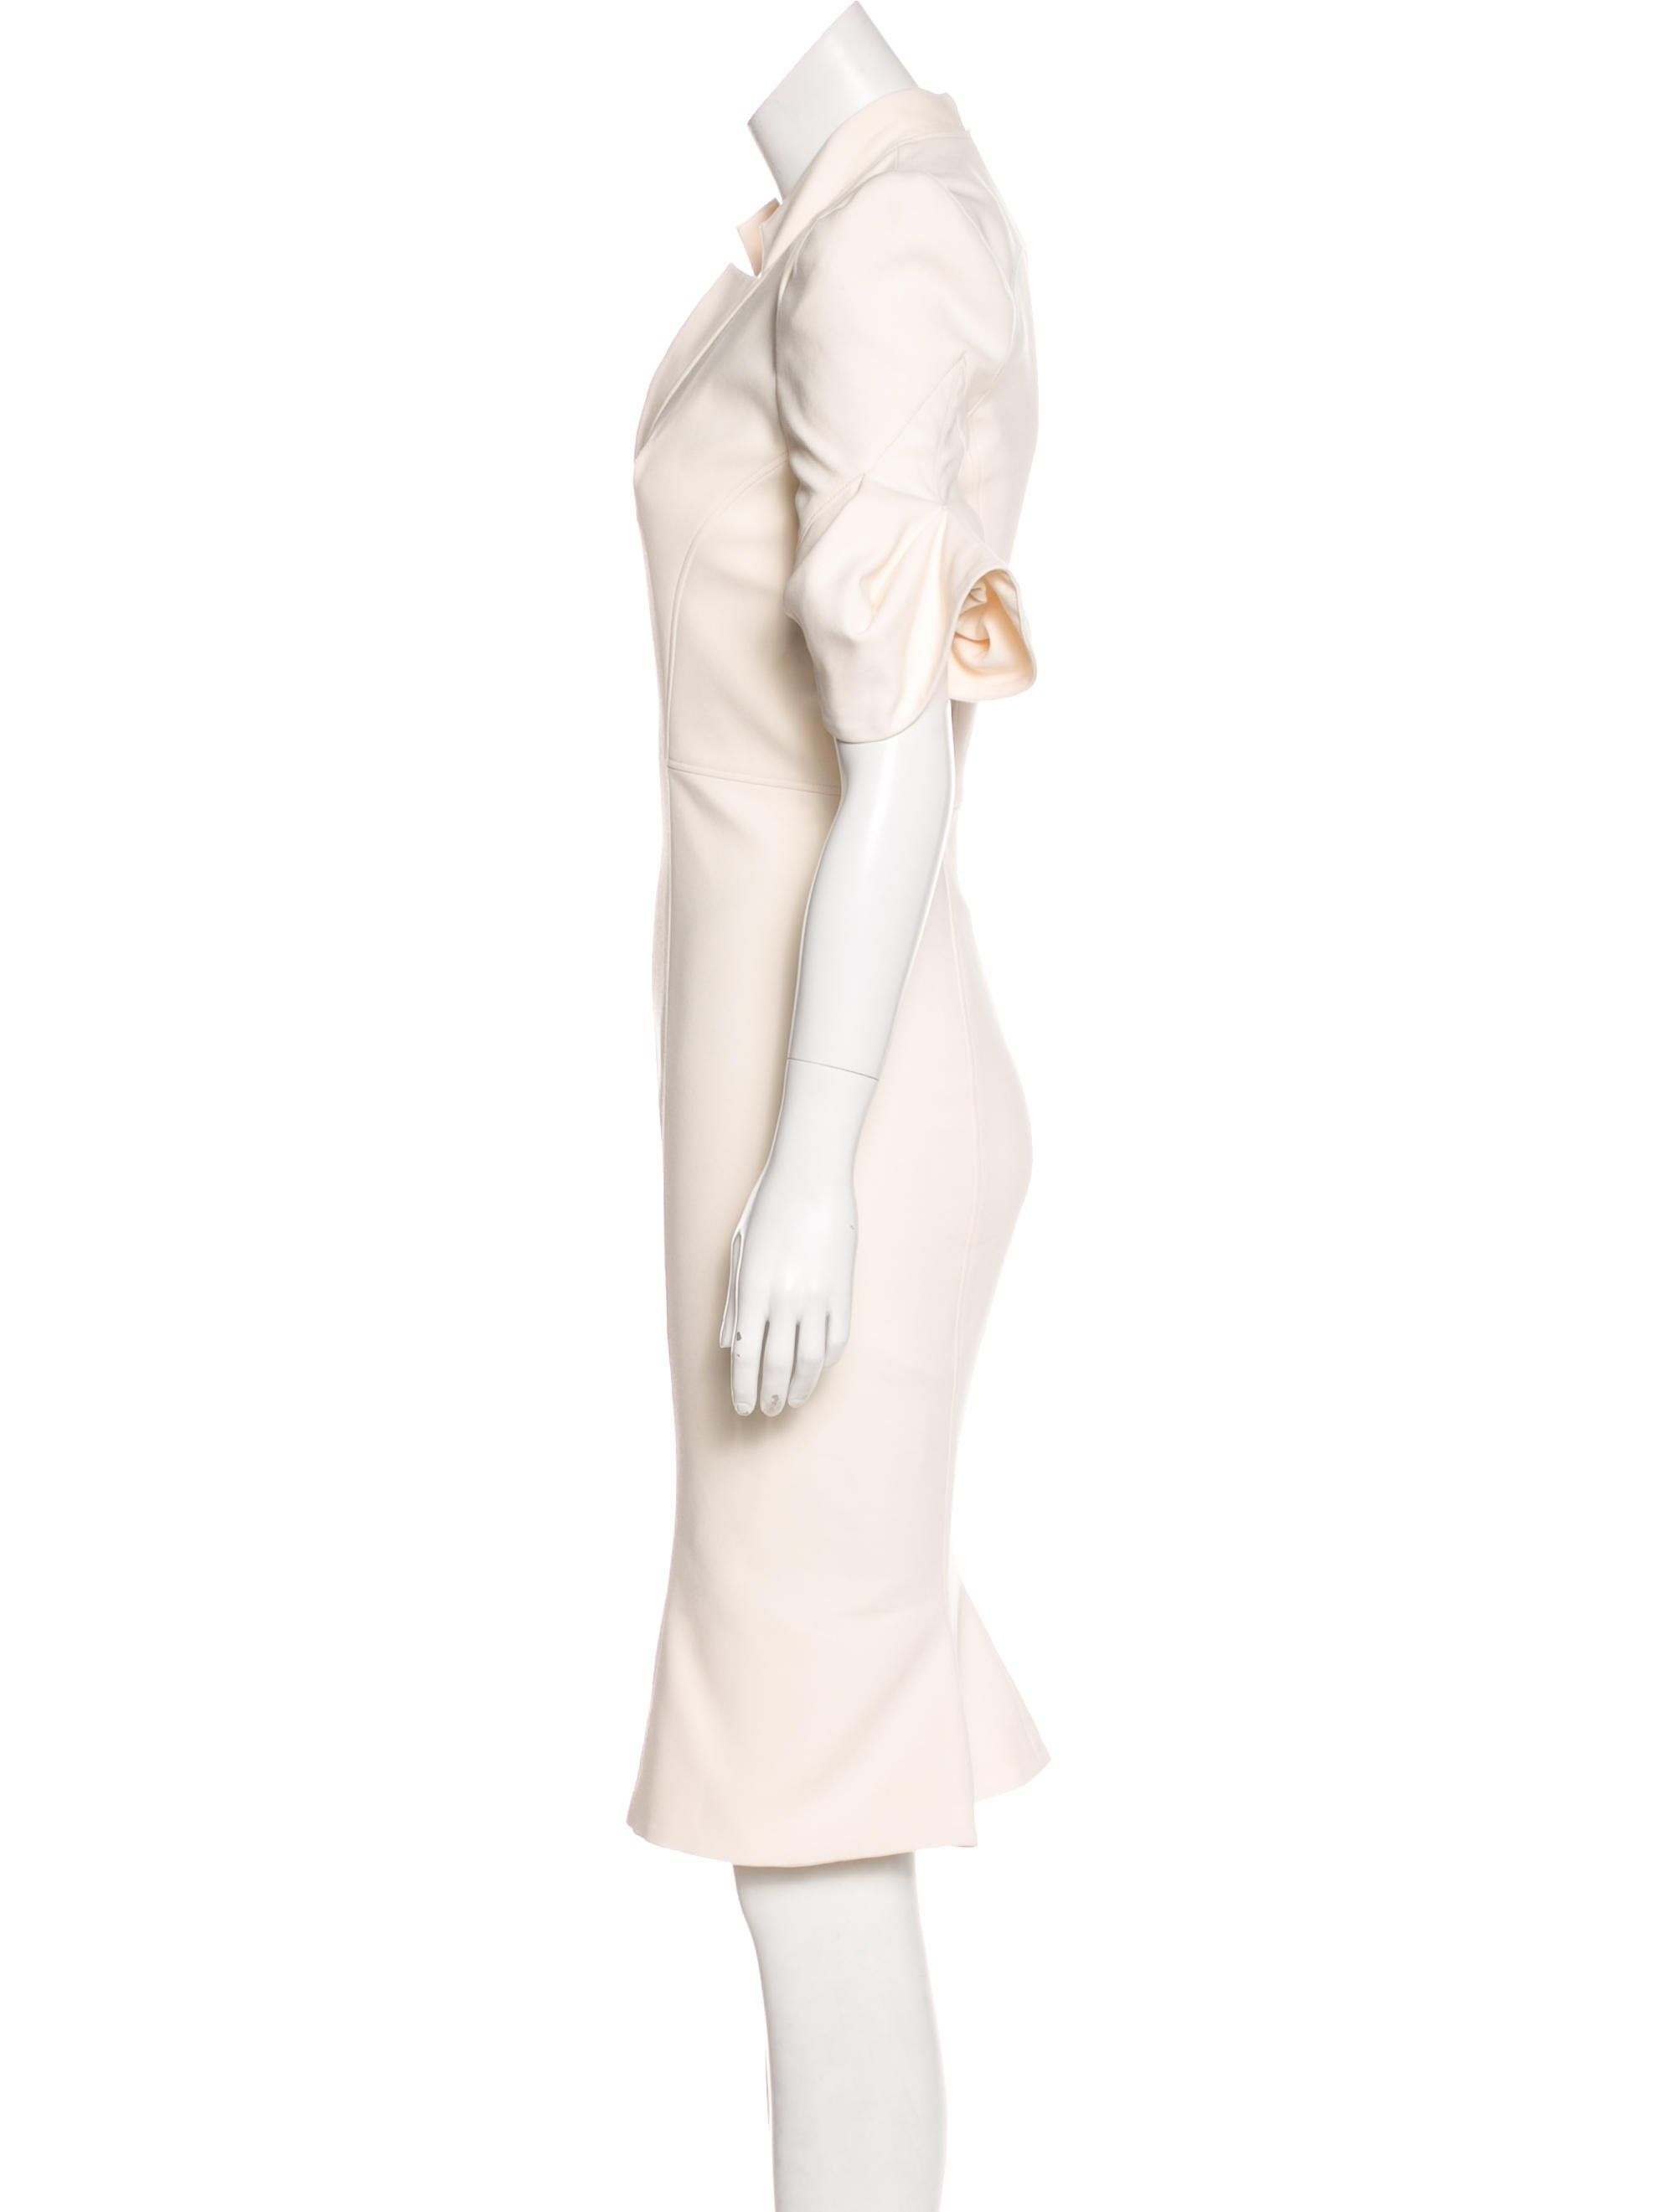 Ivory Zac Posen Structured Midi Dress With V Neck And Concealed Zip Closure At Back Midi Dress Fashion Dresses [ 2641 x 2002 Pixel ]